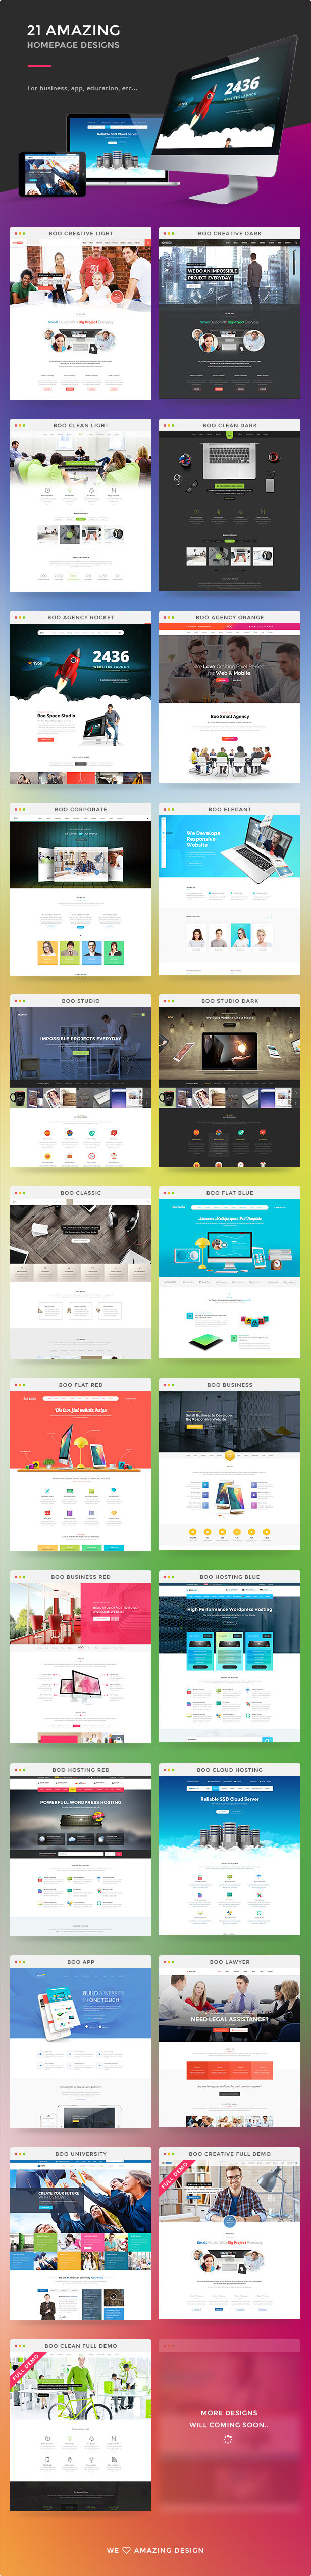 21 amazing homepage designs